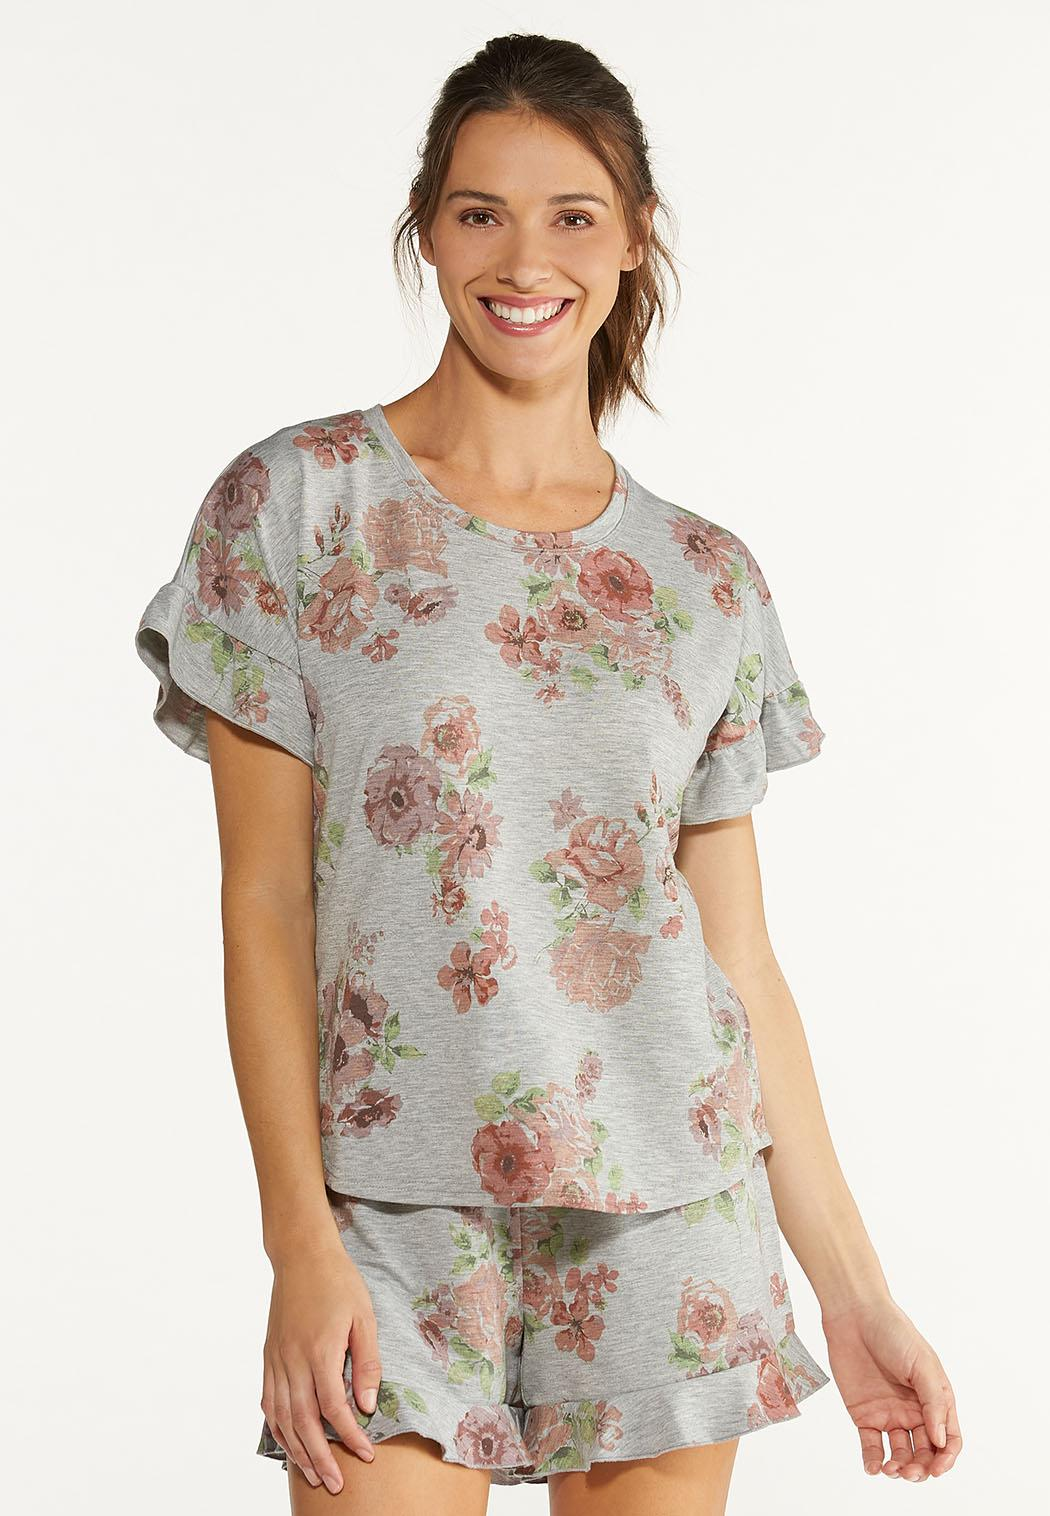 Ruffled Floral Tee